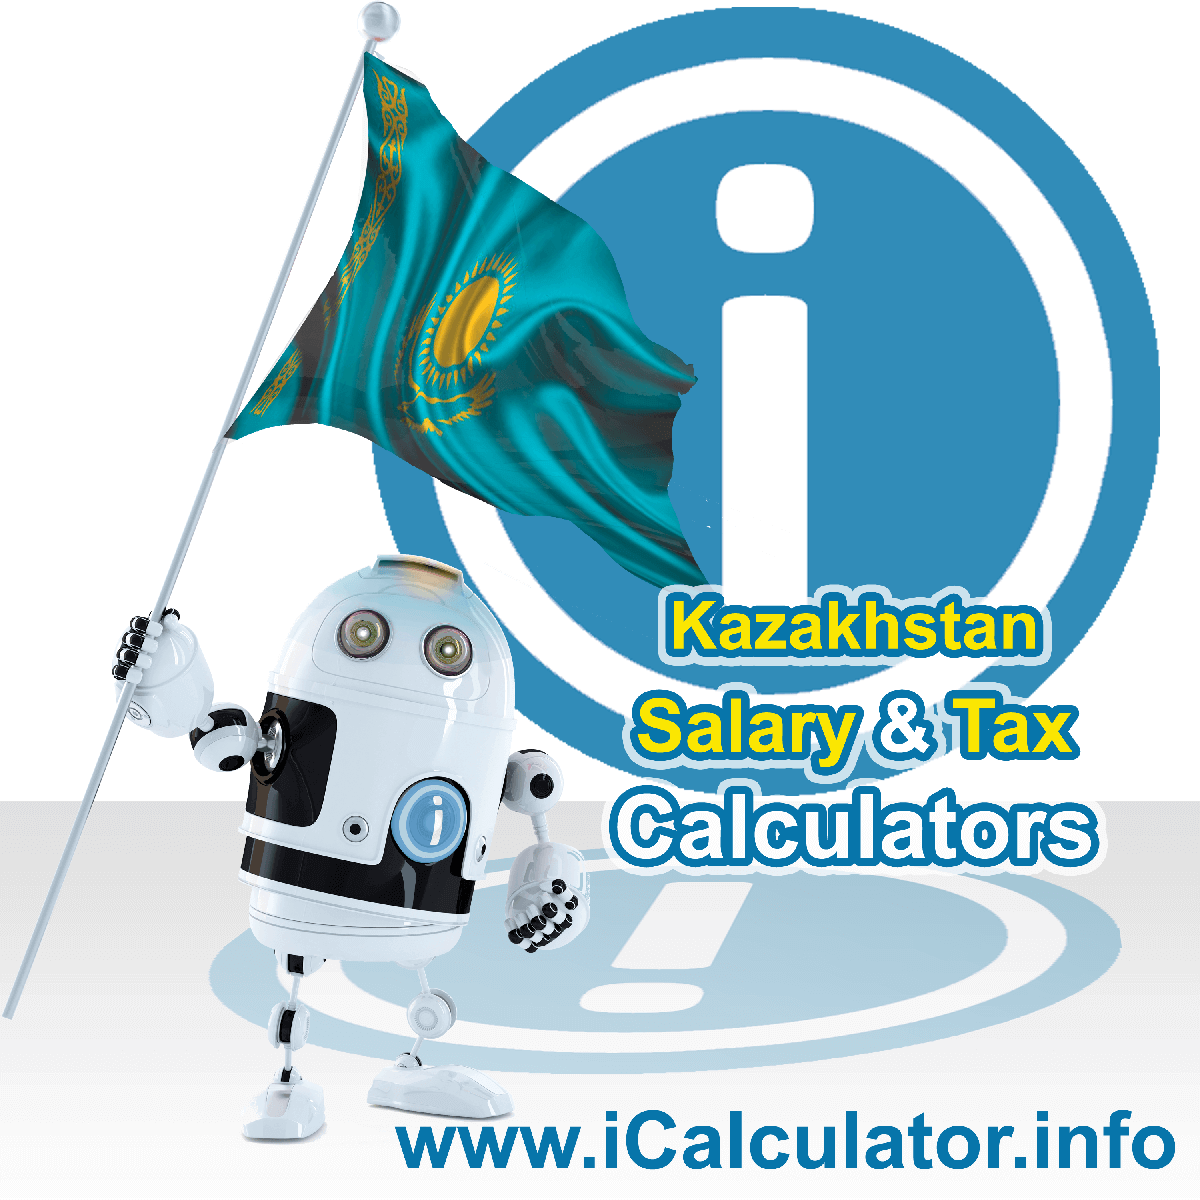 Kazakhstan Wage Calculator. This image shows the Kazakhstan flag and information relating to the tax formula for the Kazakhstan Tax Calculator